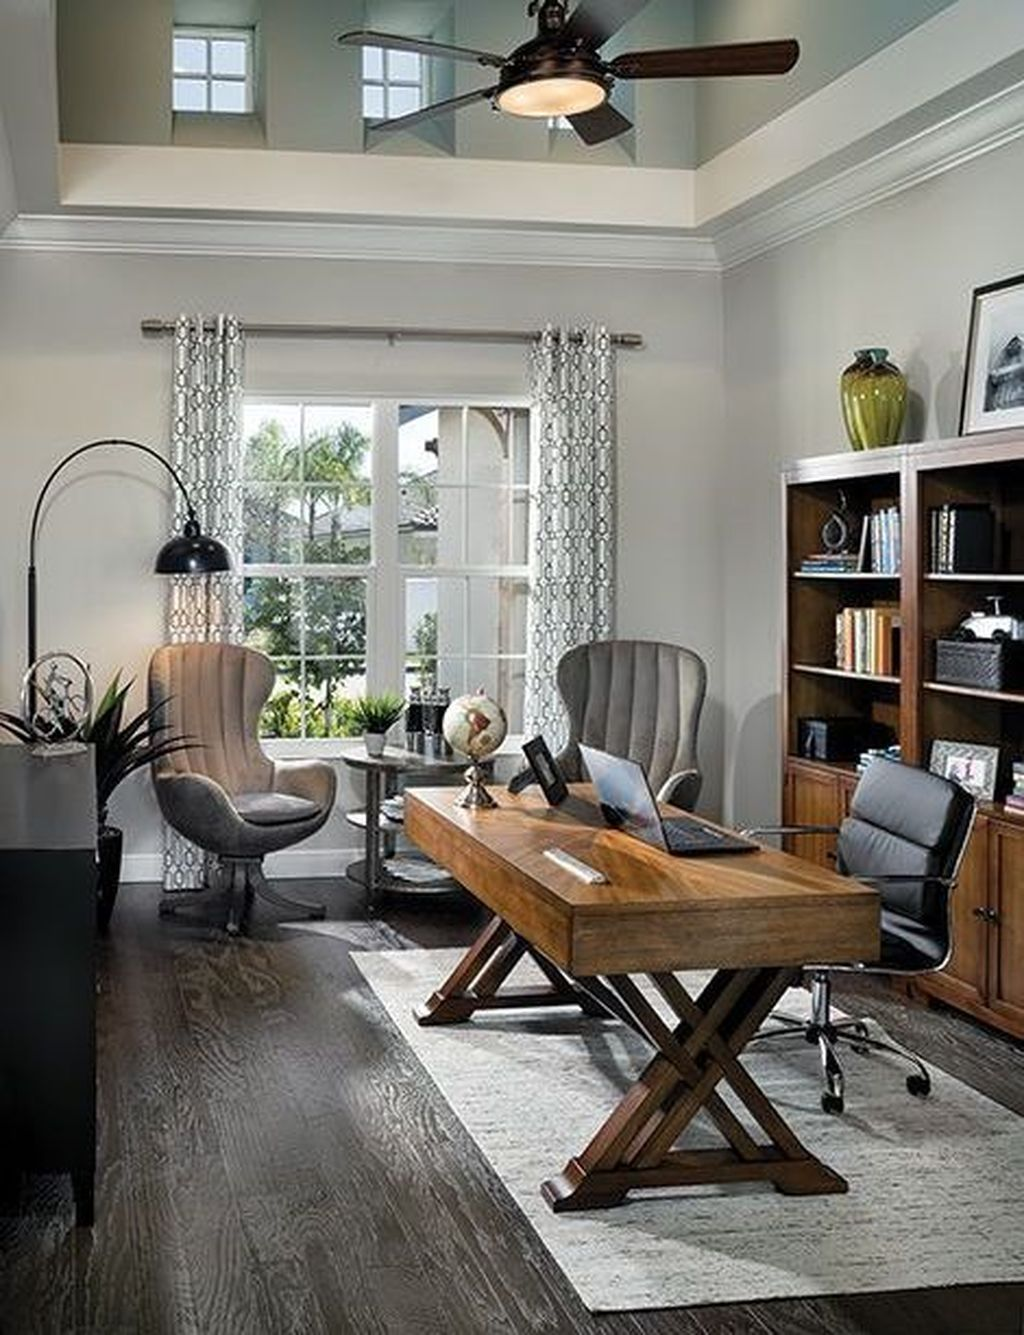 43 Extraordinary Small Home Office Design Ideas With Traditional